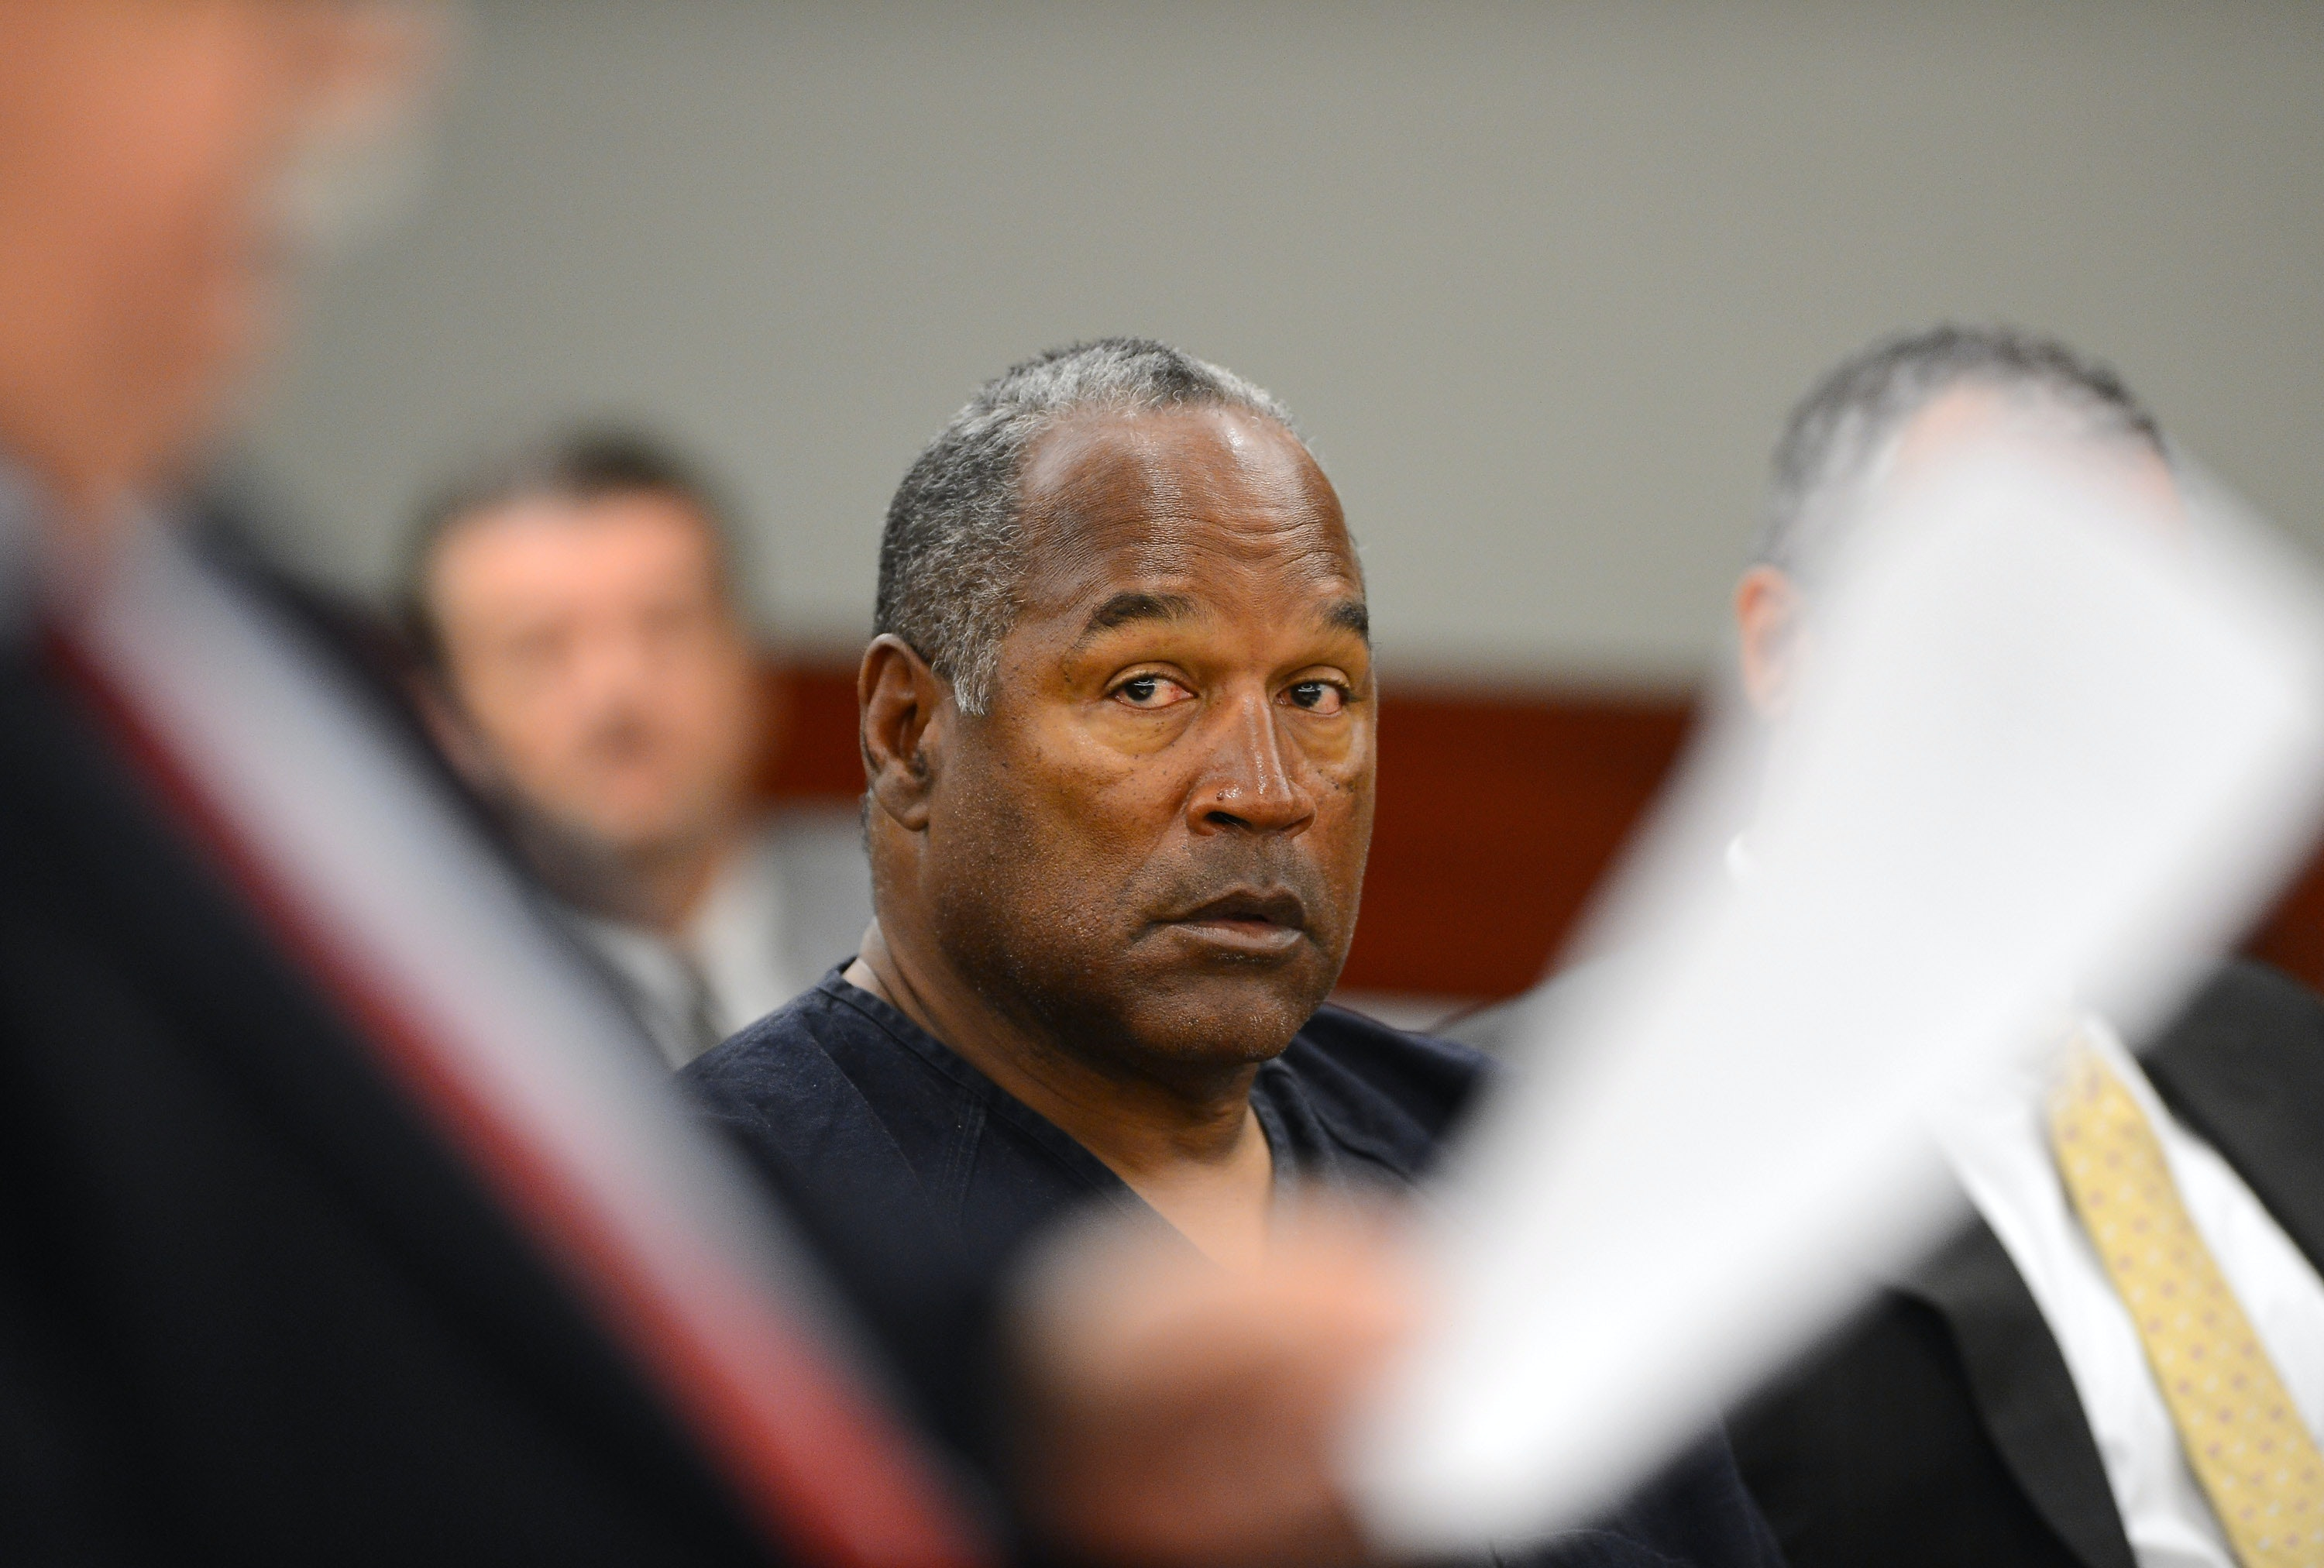 Knife found buried at OJ Simpson estate, report